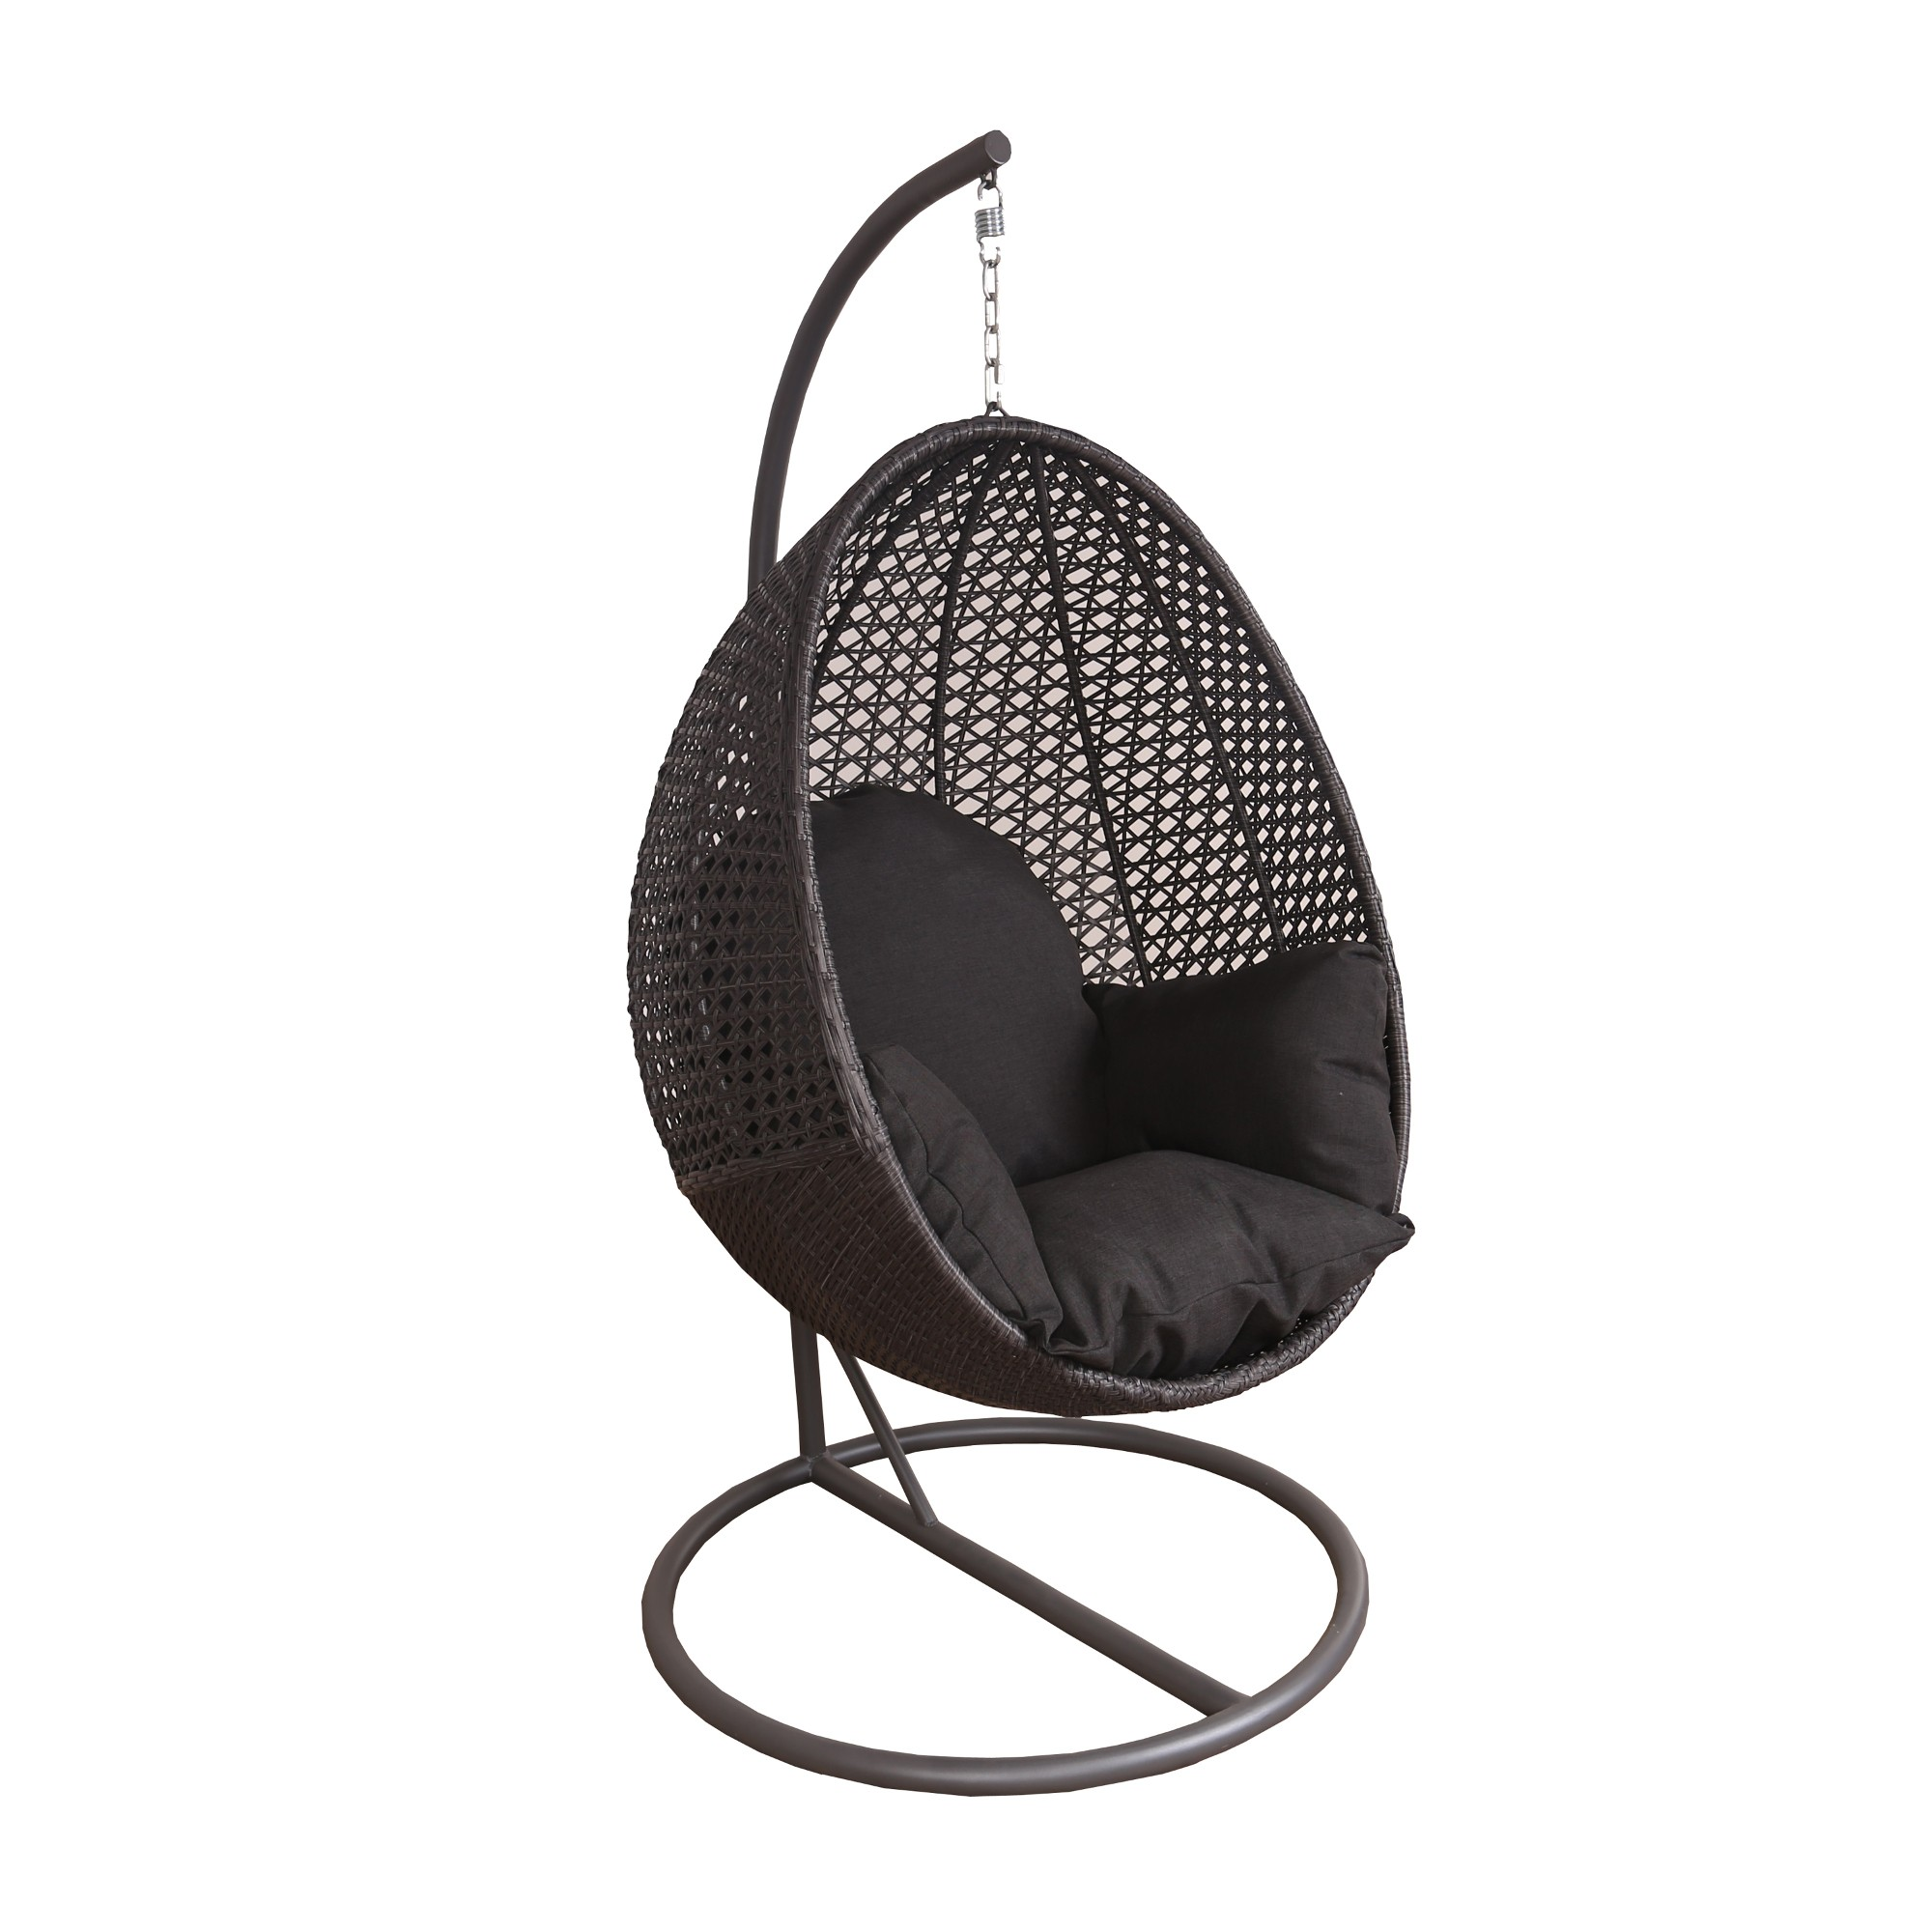 Peter Pod Hanging Egg Chair - Charcoal - Gift Guide: $100 and Up - Gift  Guide - Sale & Seasonal | Barbeques Galore